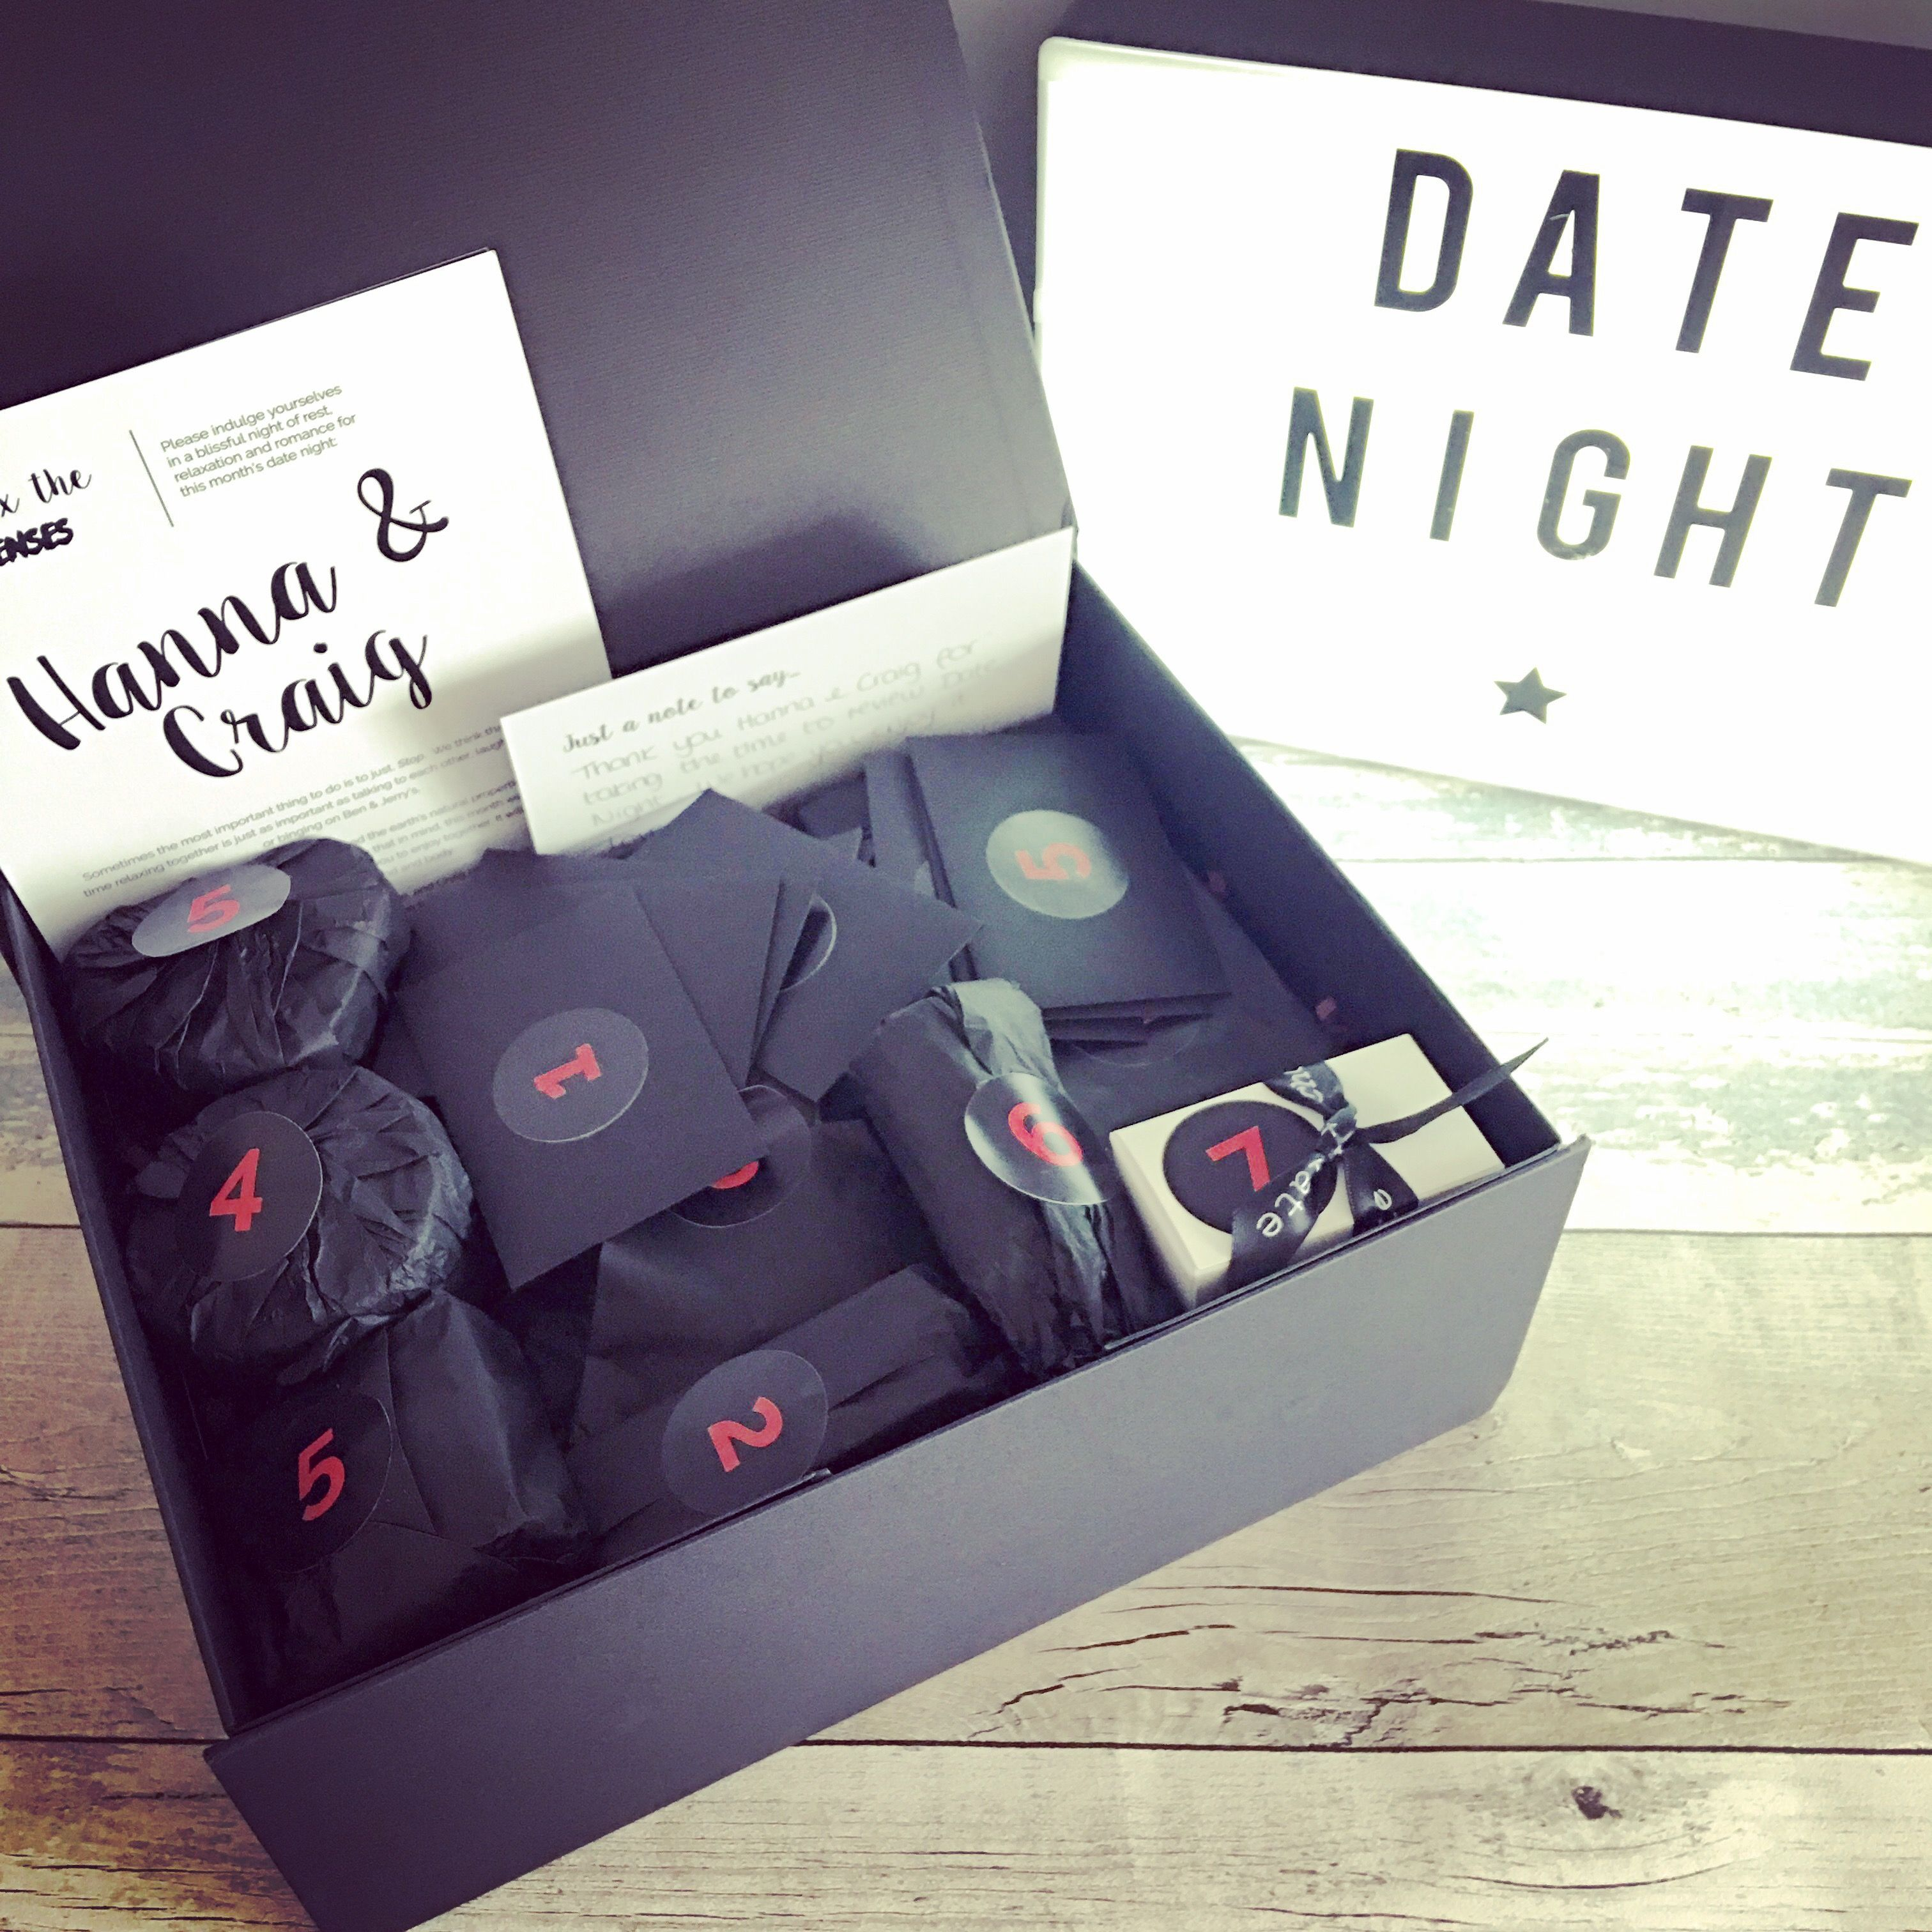 Brilliant Idea For A Subscription Box Date Night